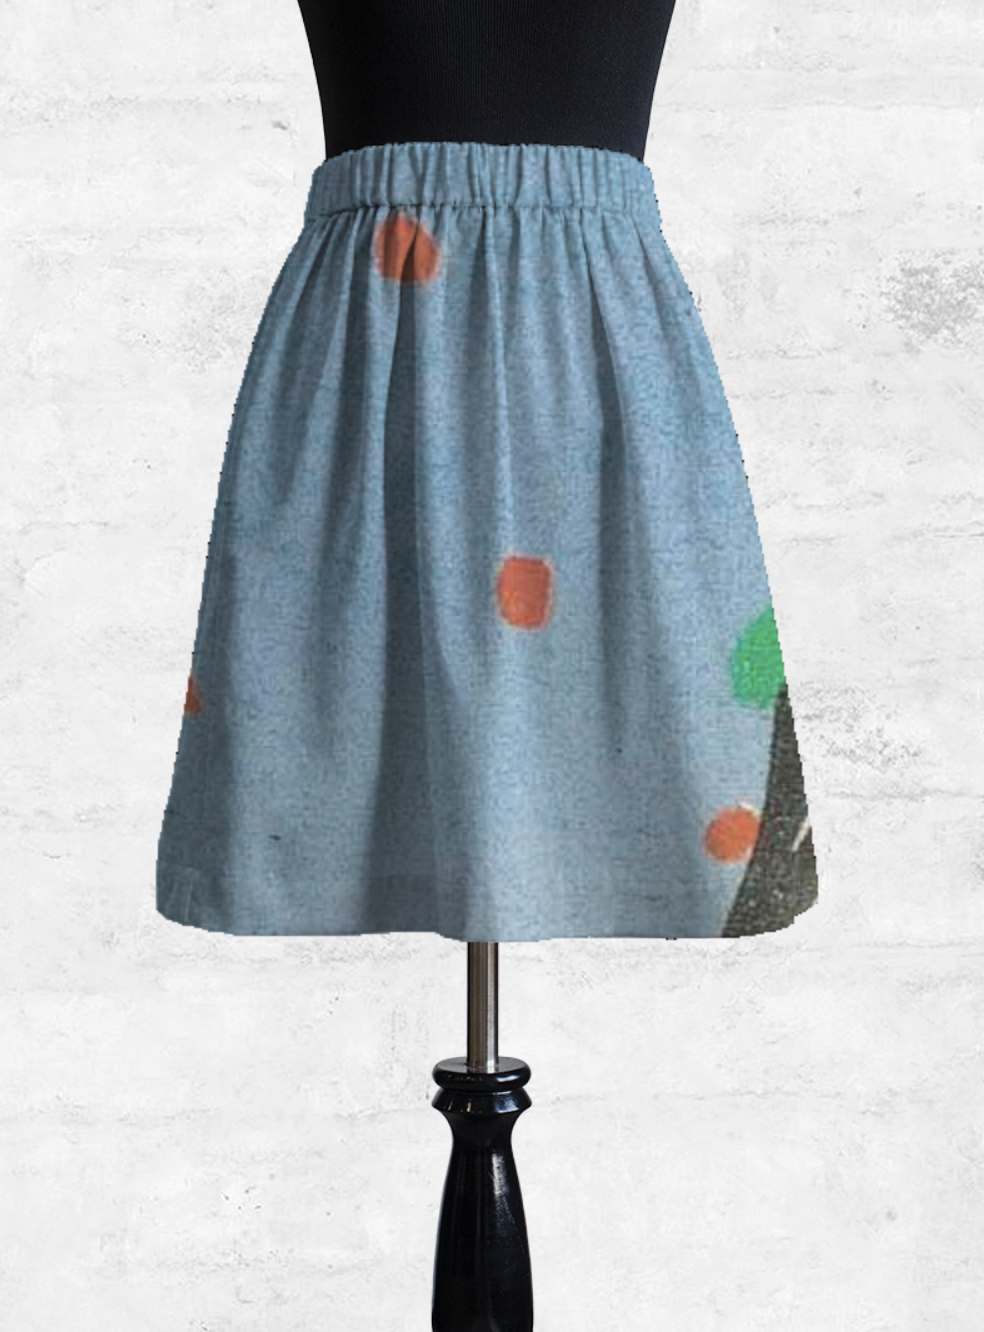 Skirts-WilliamHeydt-VidaCollection2018-8.png